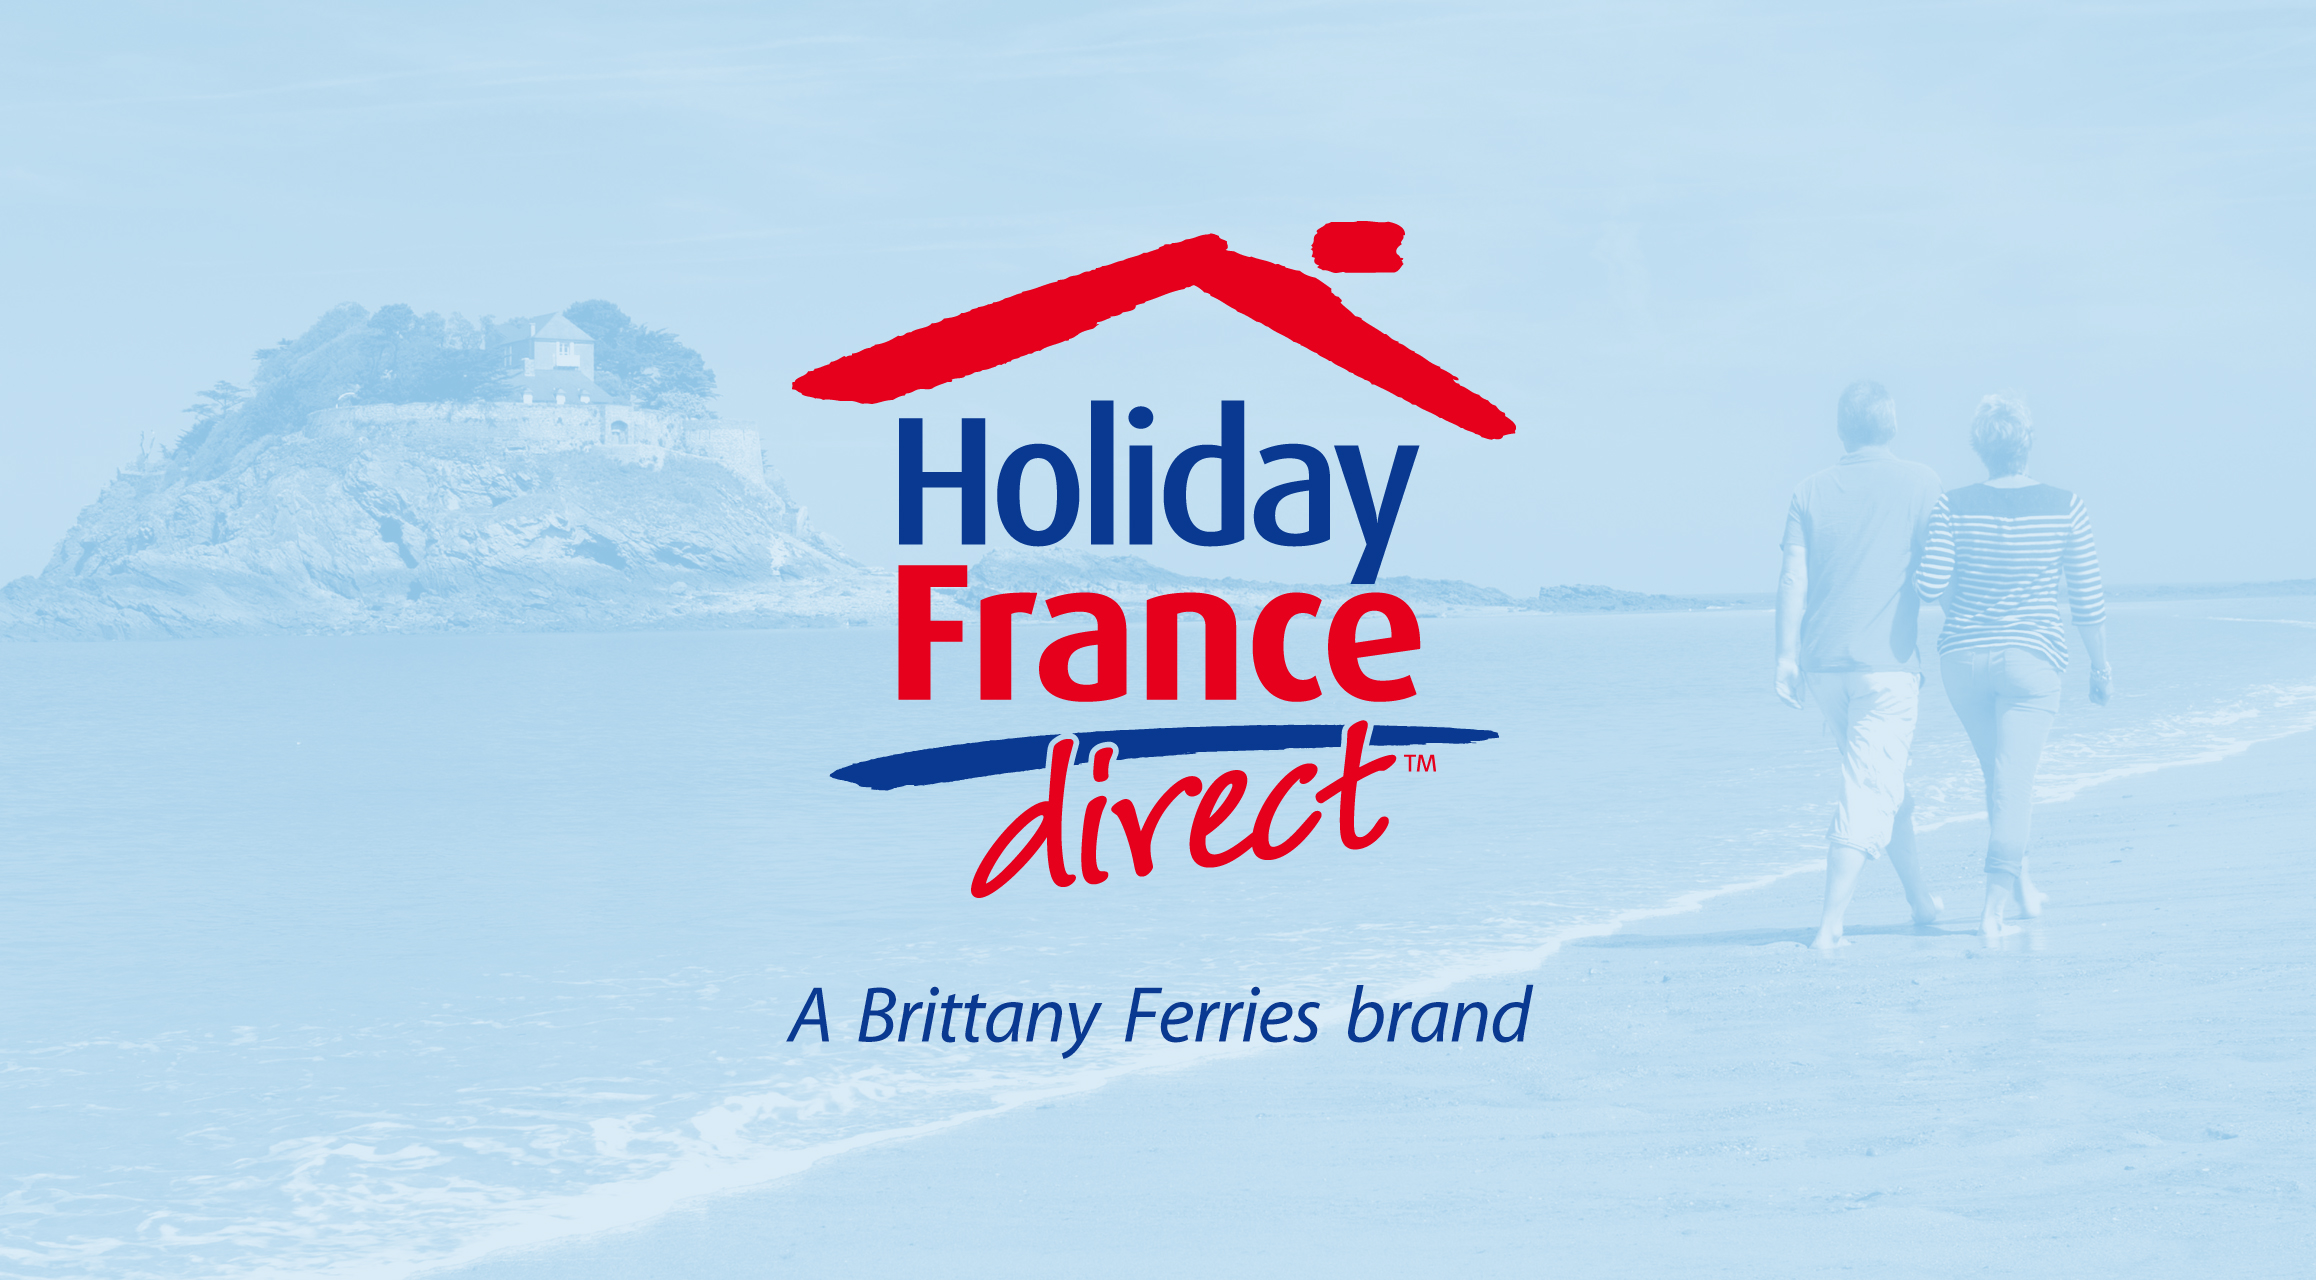 SEO and social success for Holiday France Direct